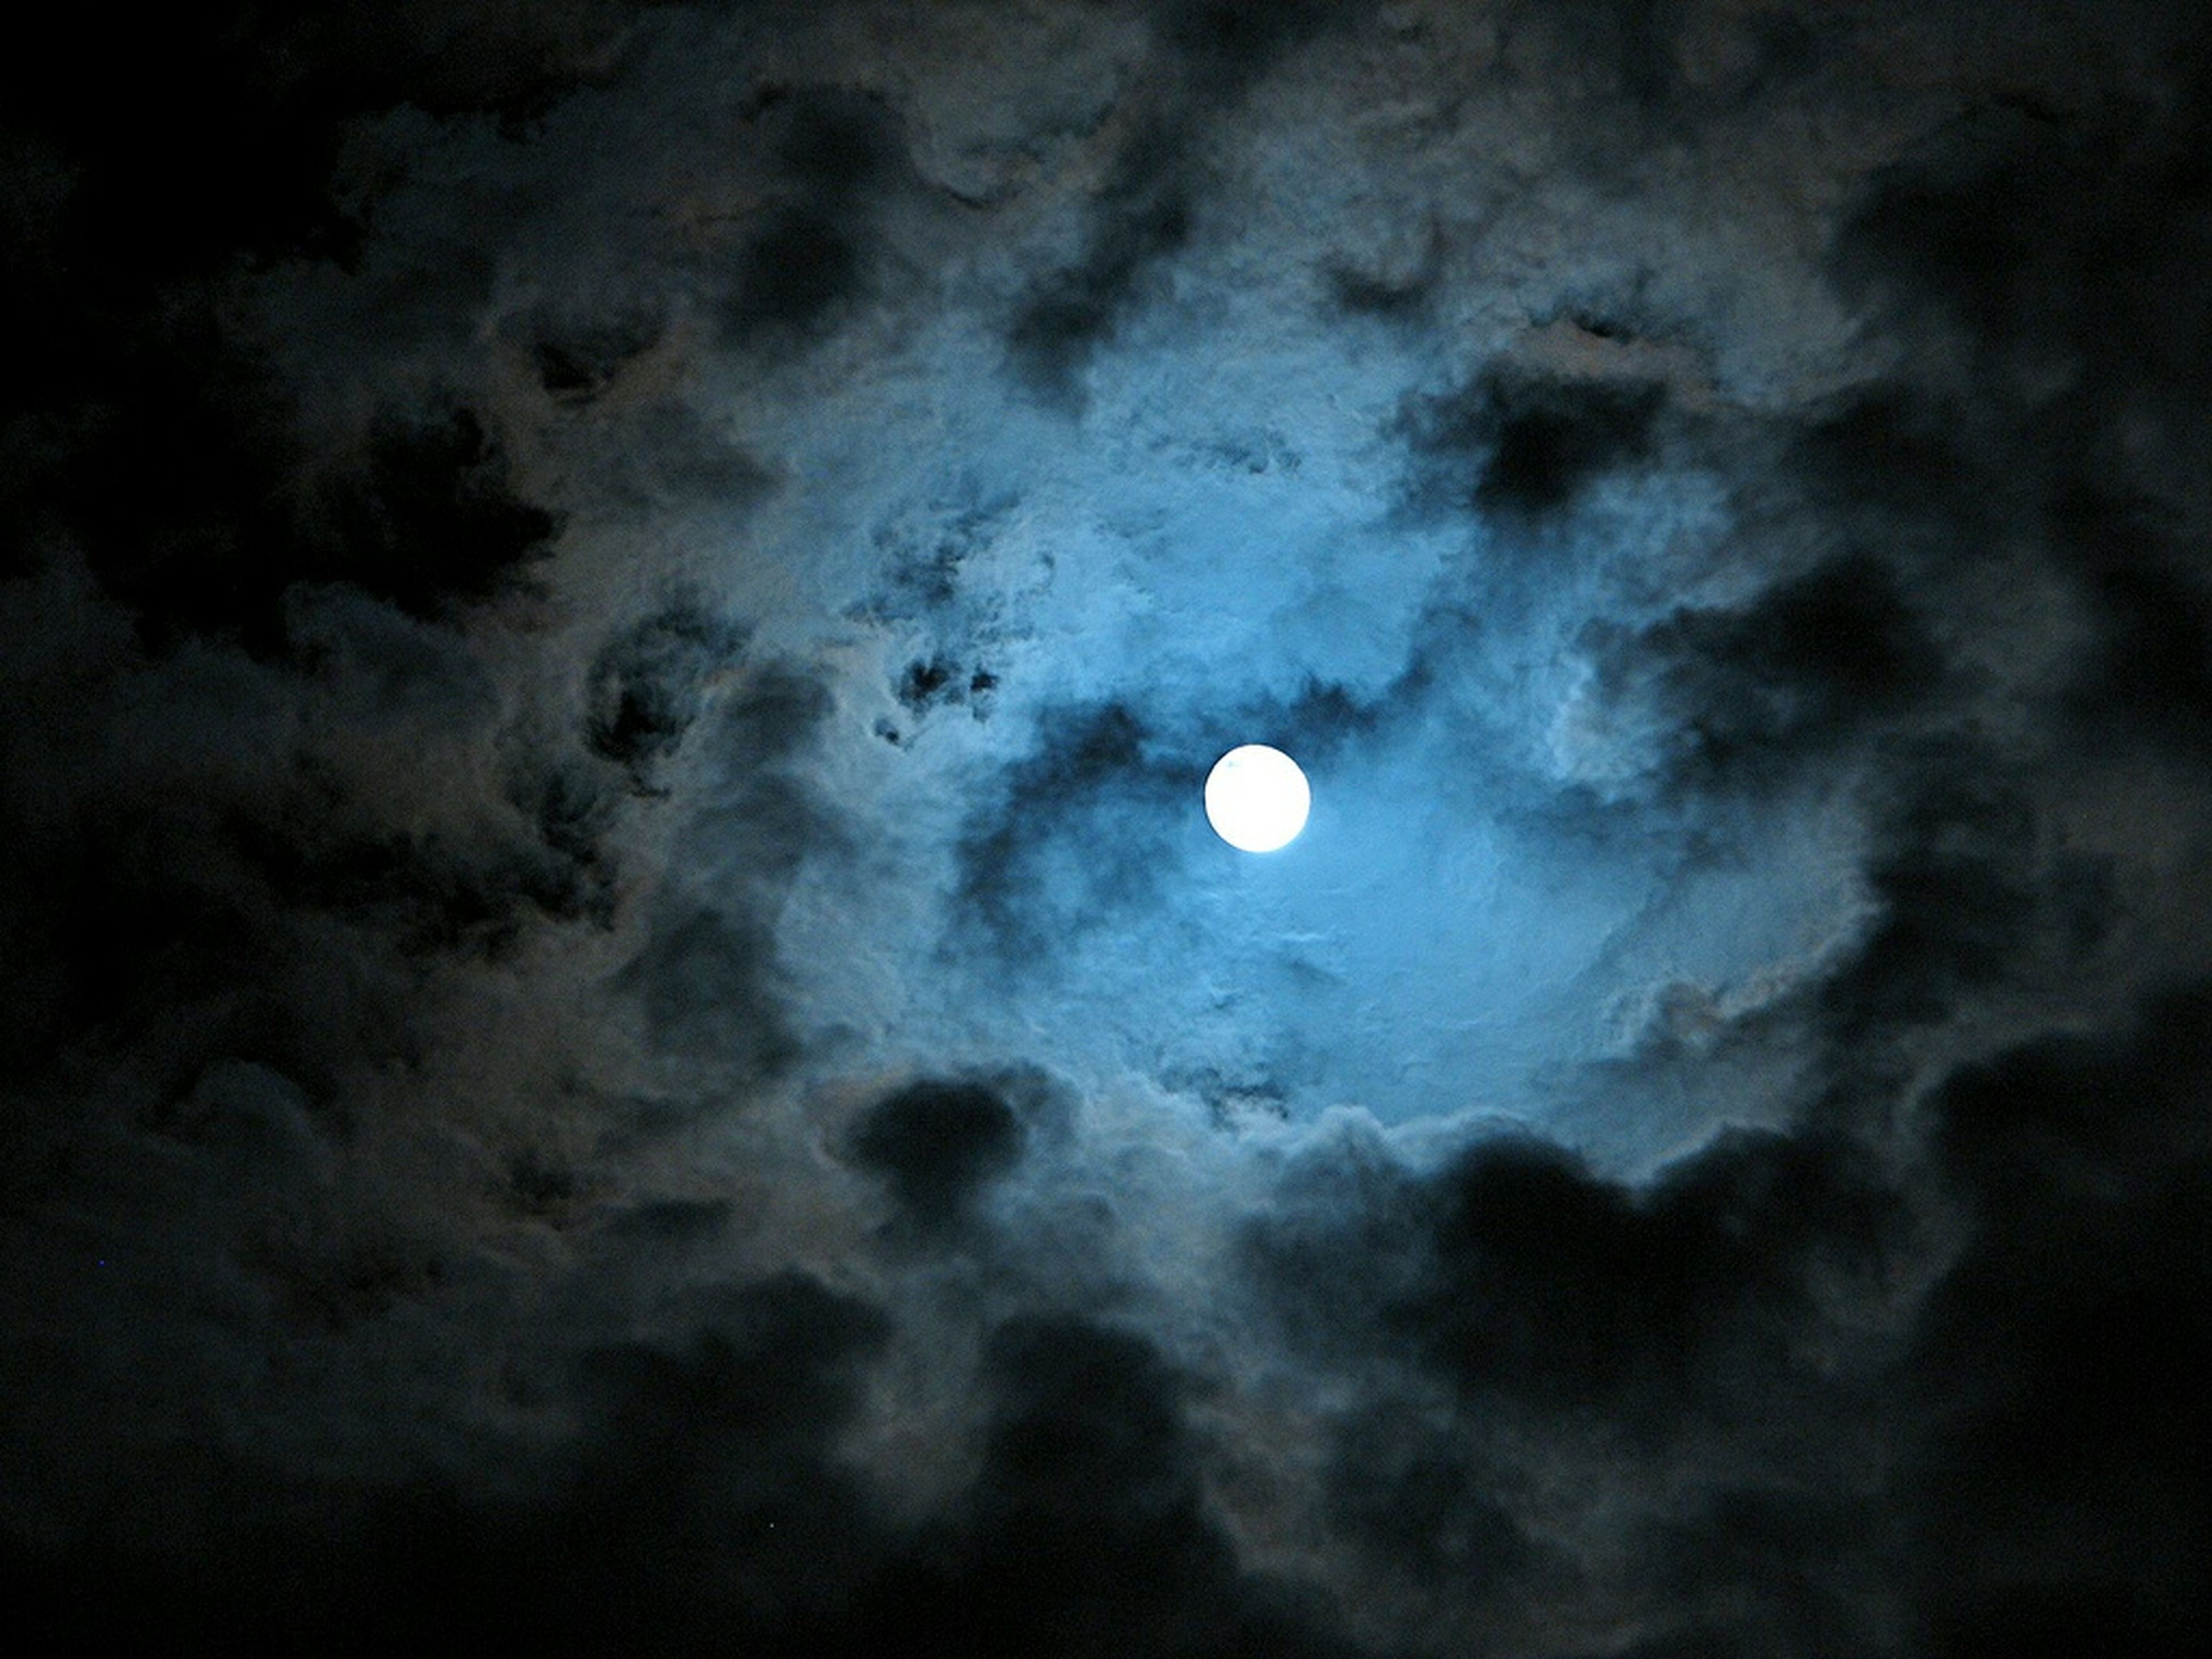 moon, sky, astronomy, full moon, beauty in nature, scenics, low angle view, planetary moon, tranquility, night, tranquil scene, nature, sky only, cloud - sky, idyllic, majestic, space exploration, moon surface, moonlight, cloudy